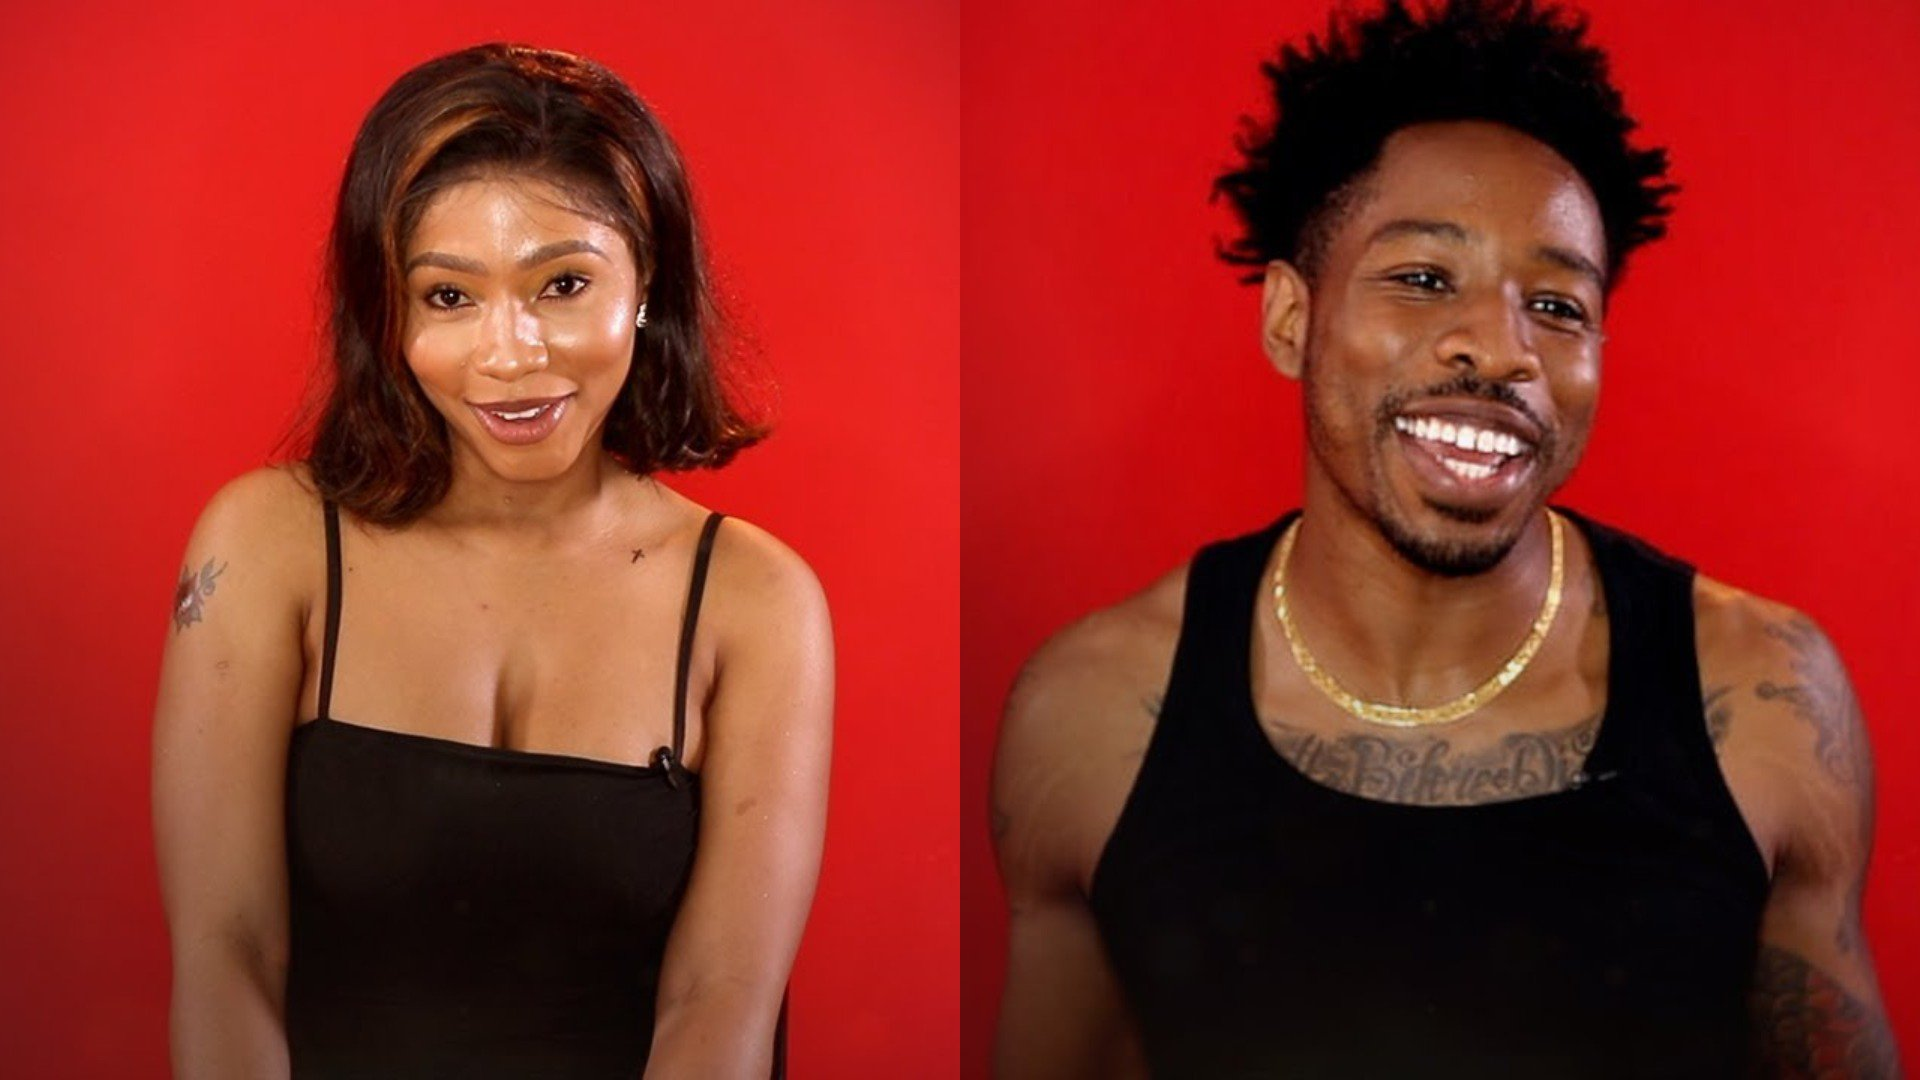 Mercy open up on Relationship with Ike in Big Brother House